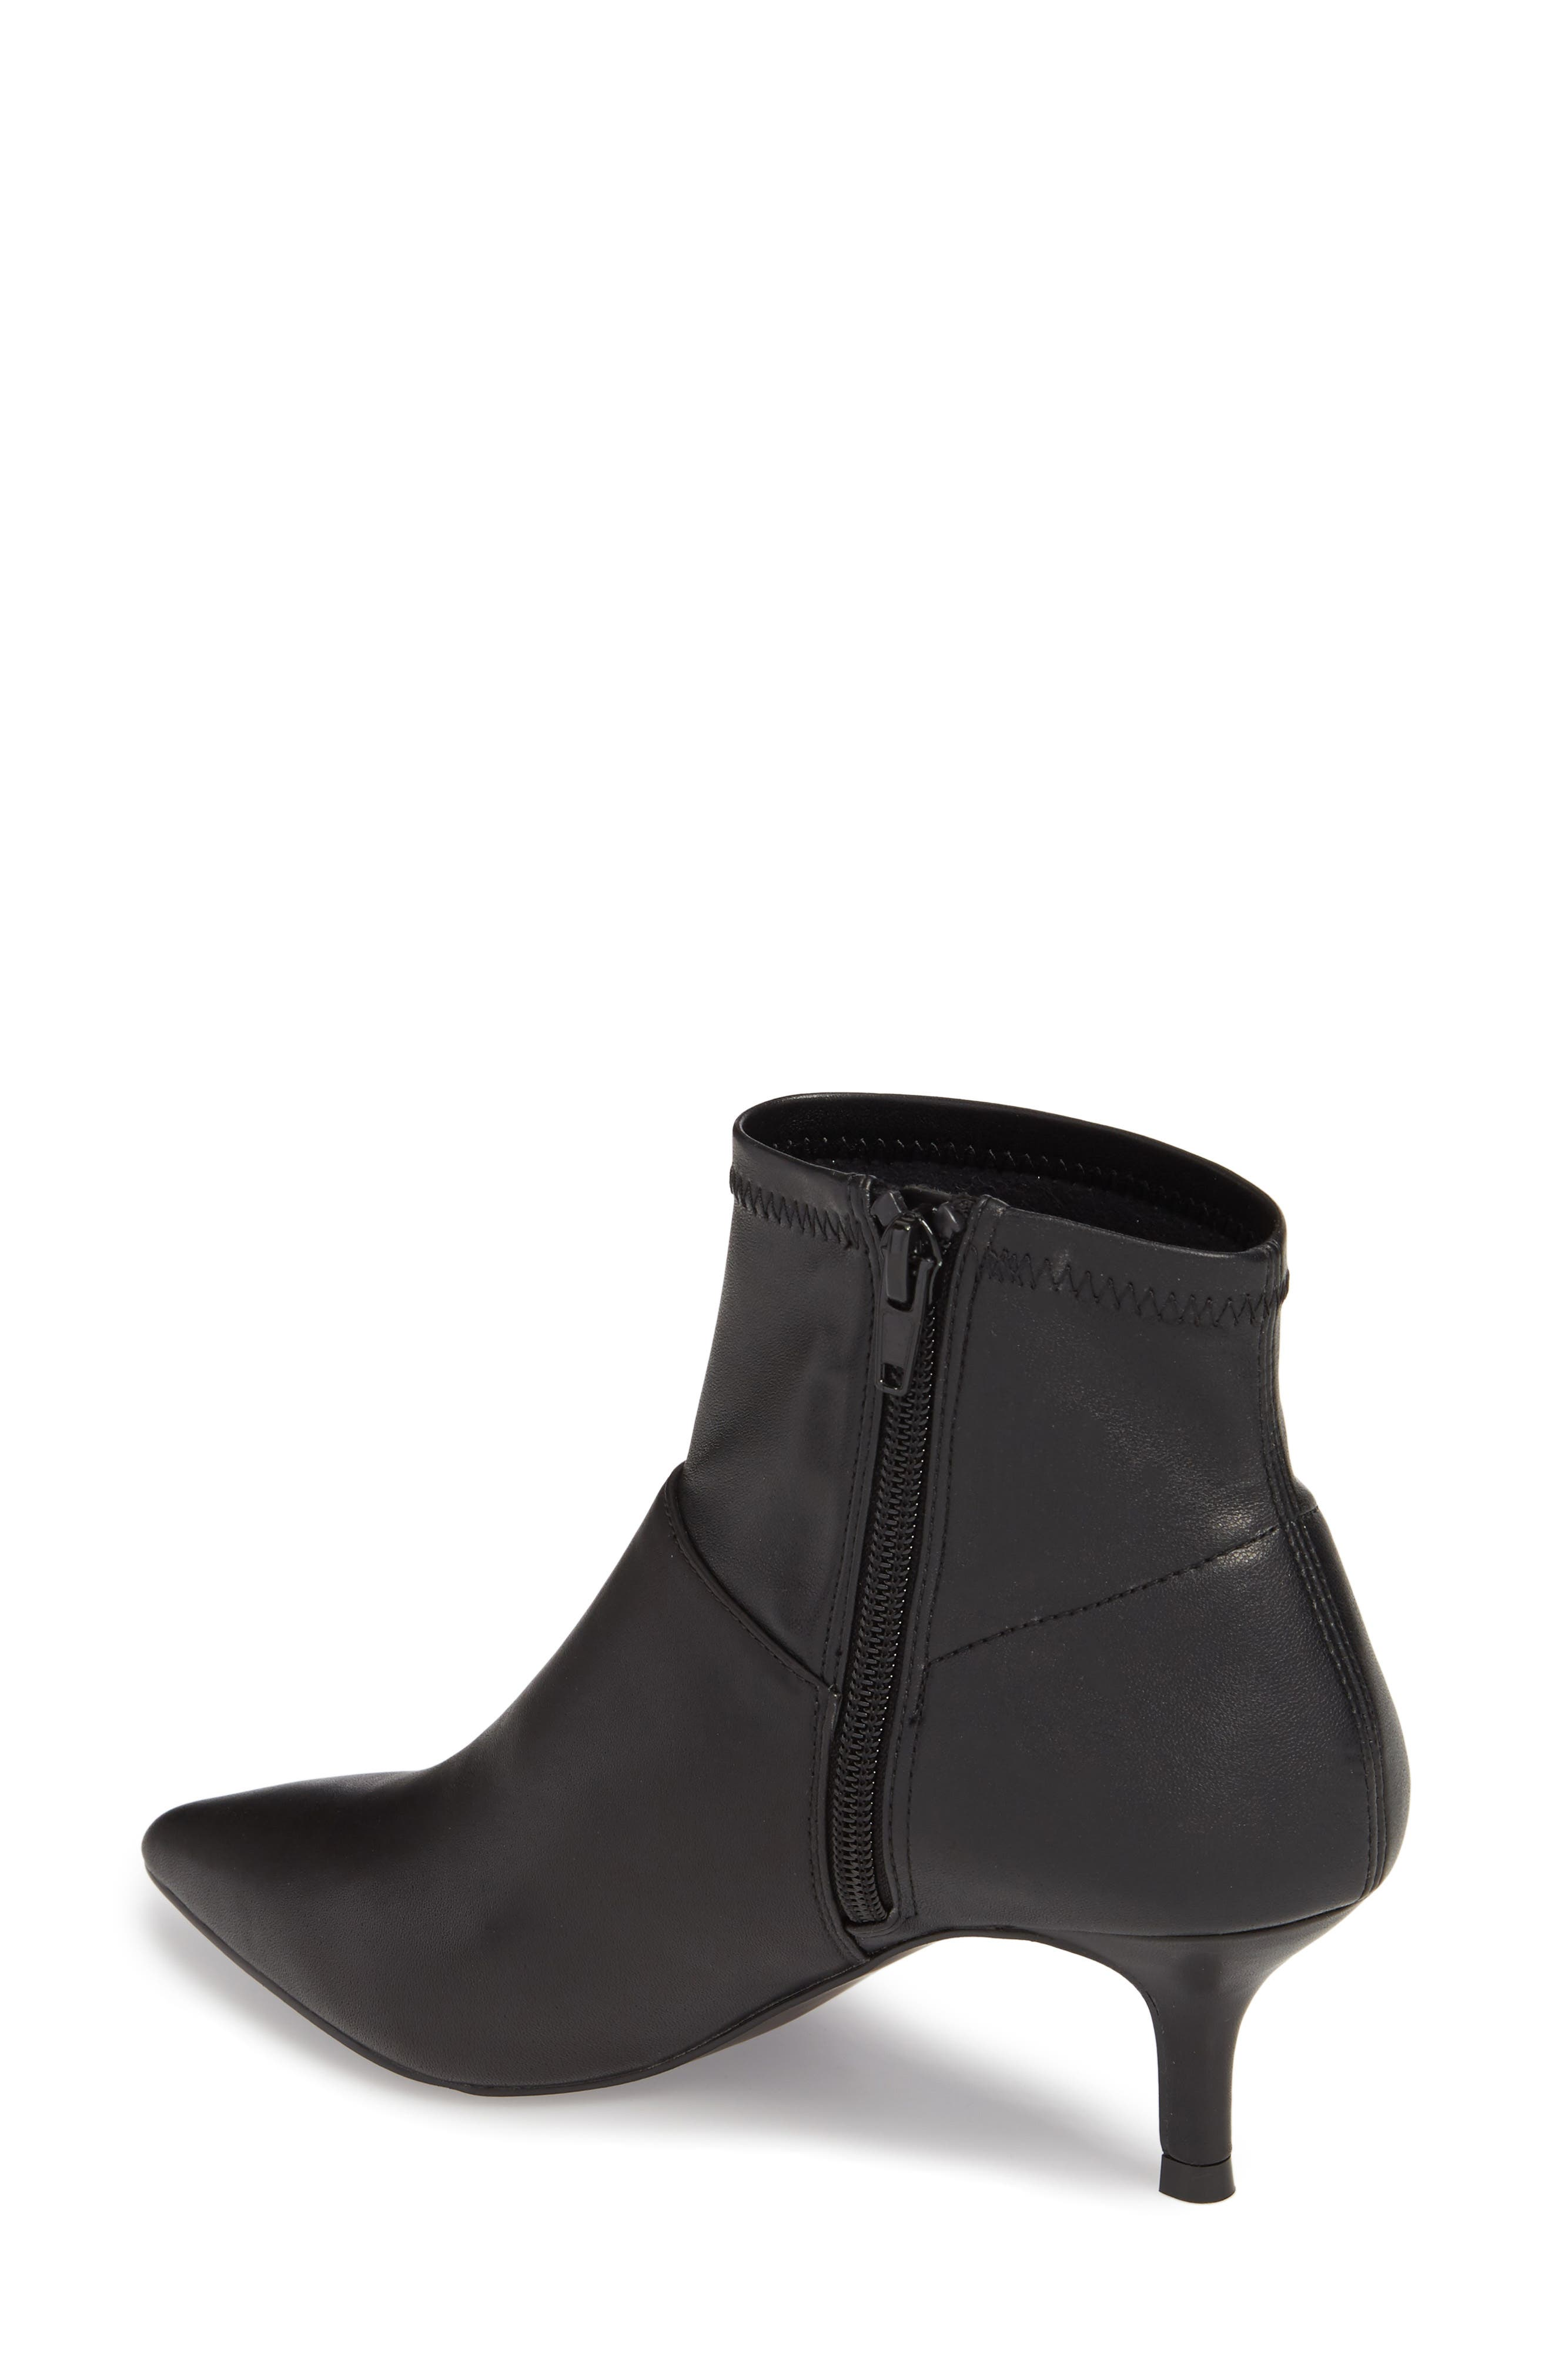 Vida Pointy Toe Bootie,                             Alternate thumbnail 3, color,